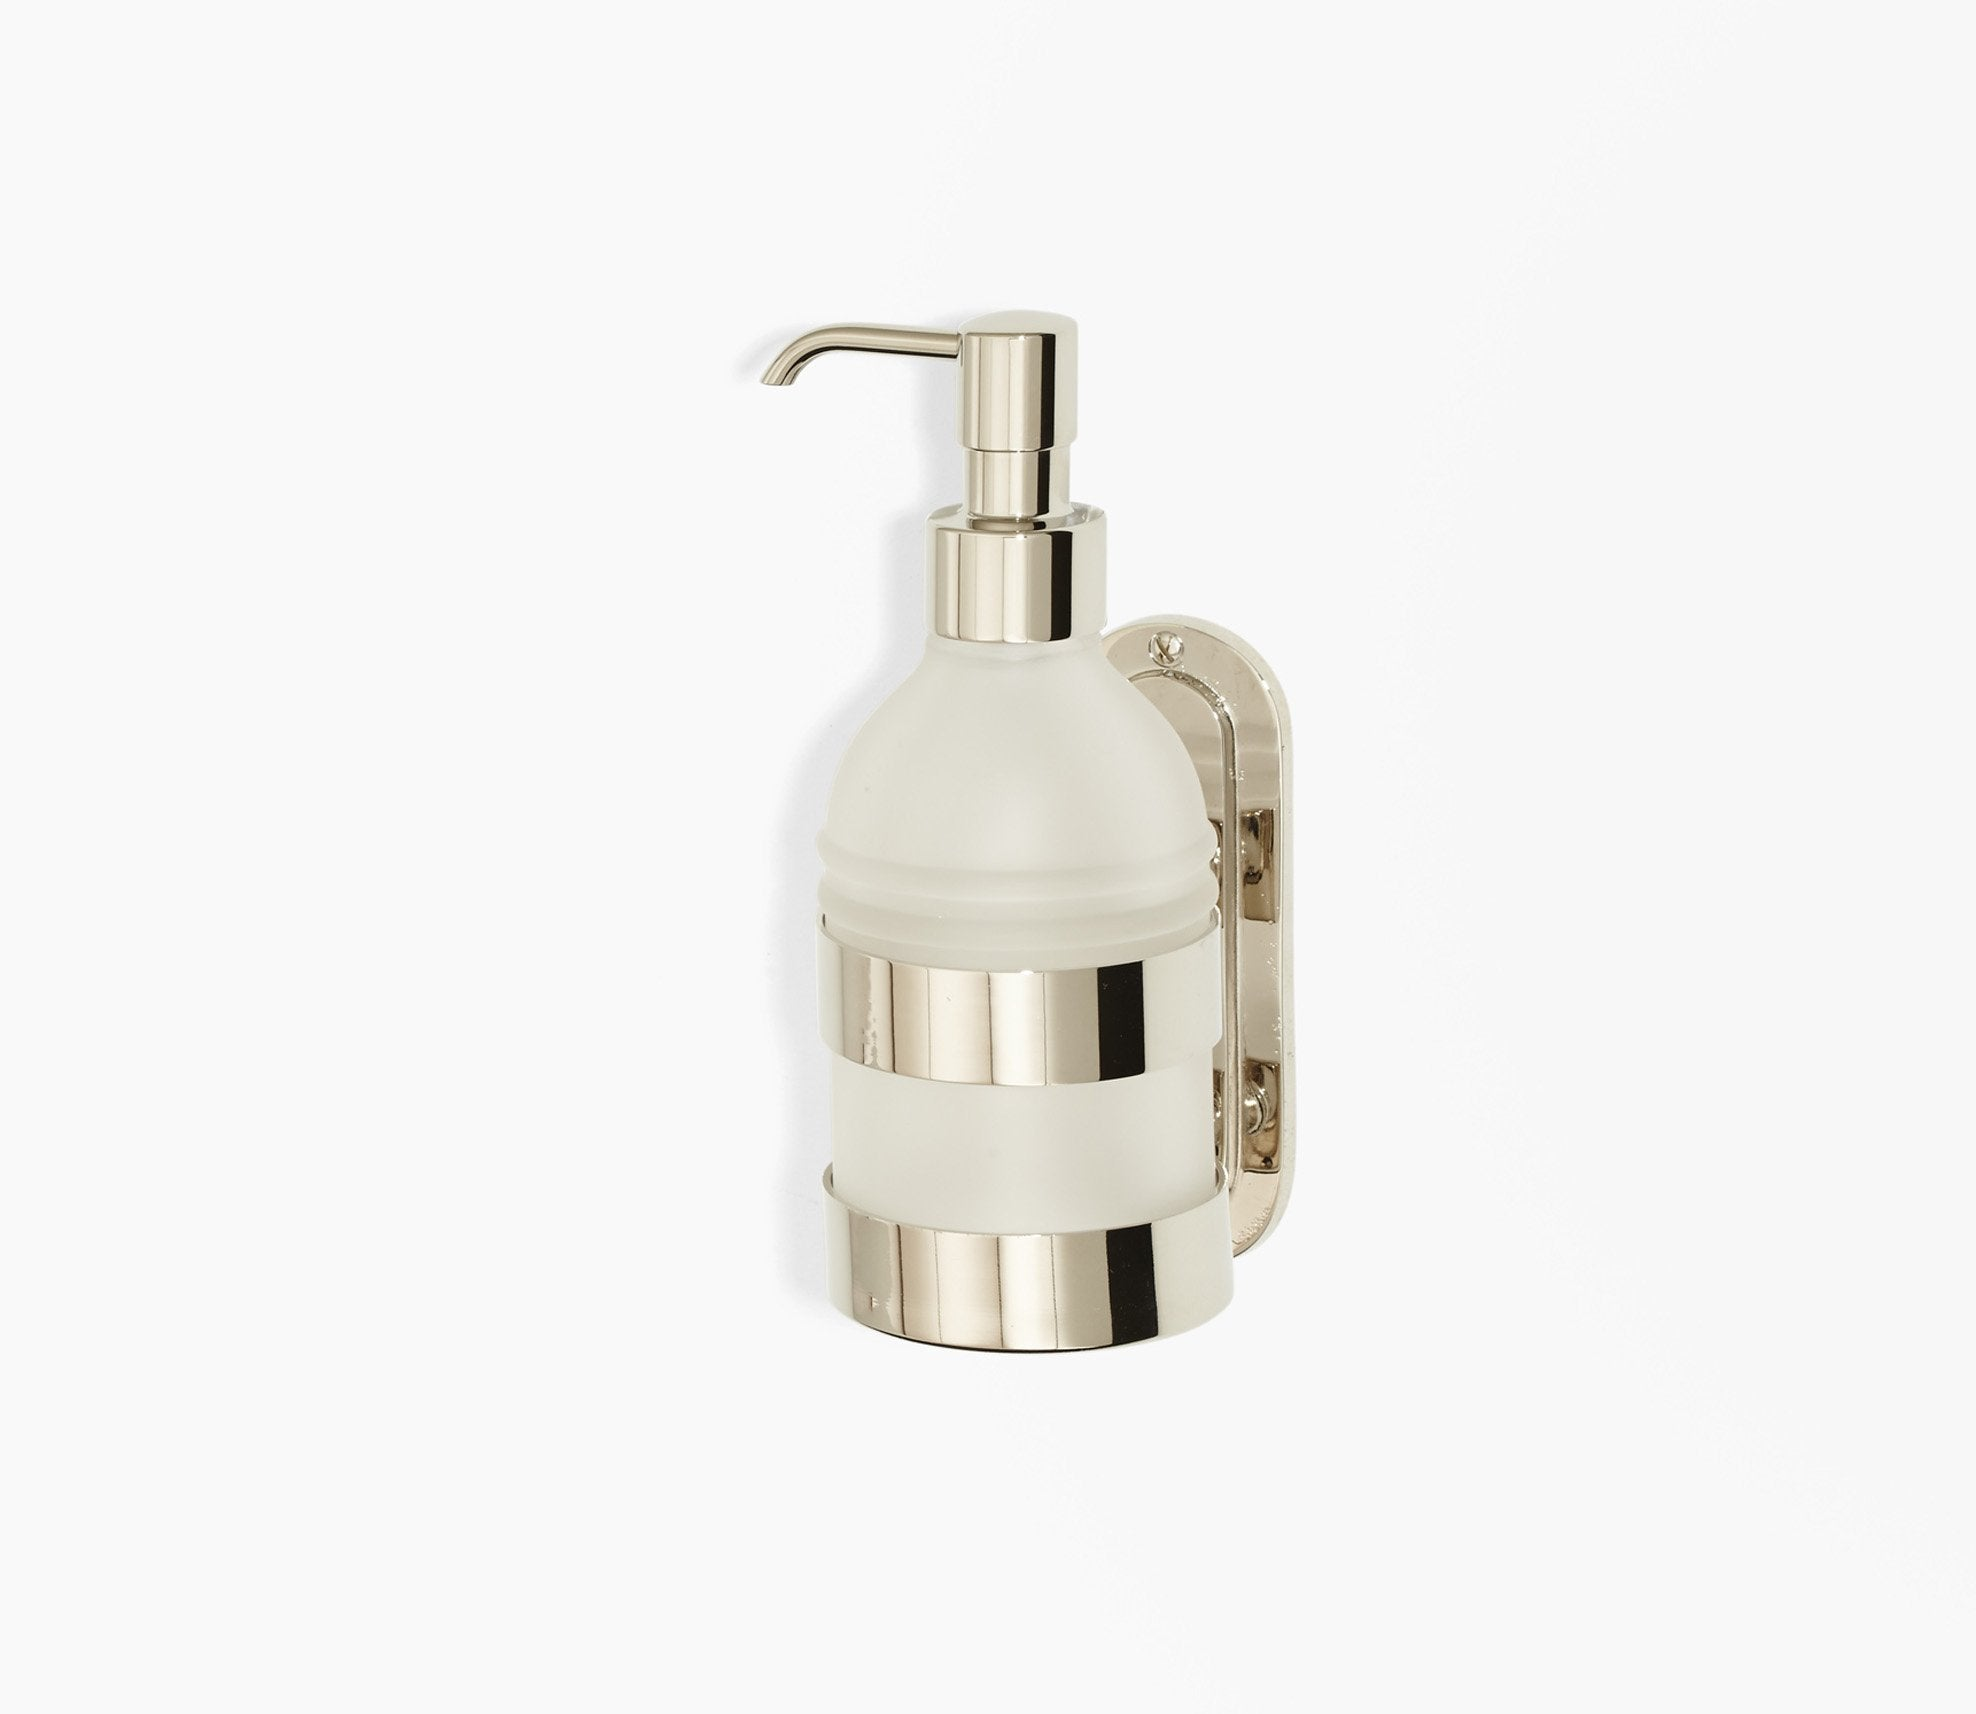 Moderna Wall Soap Pump Frosted Glass Product Image 1